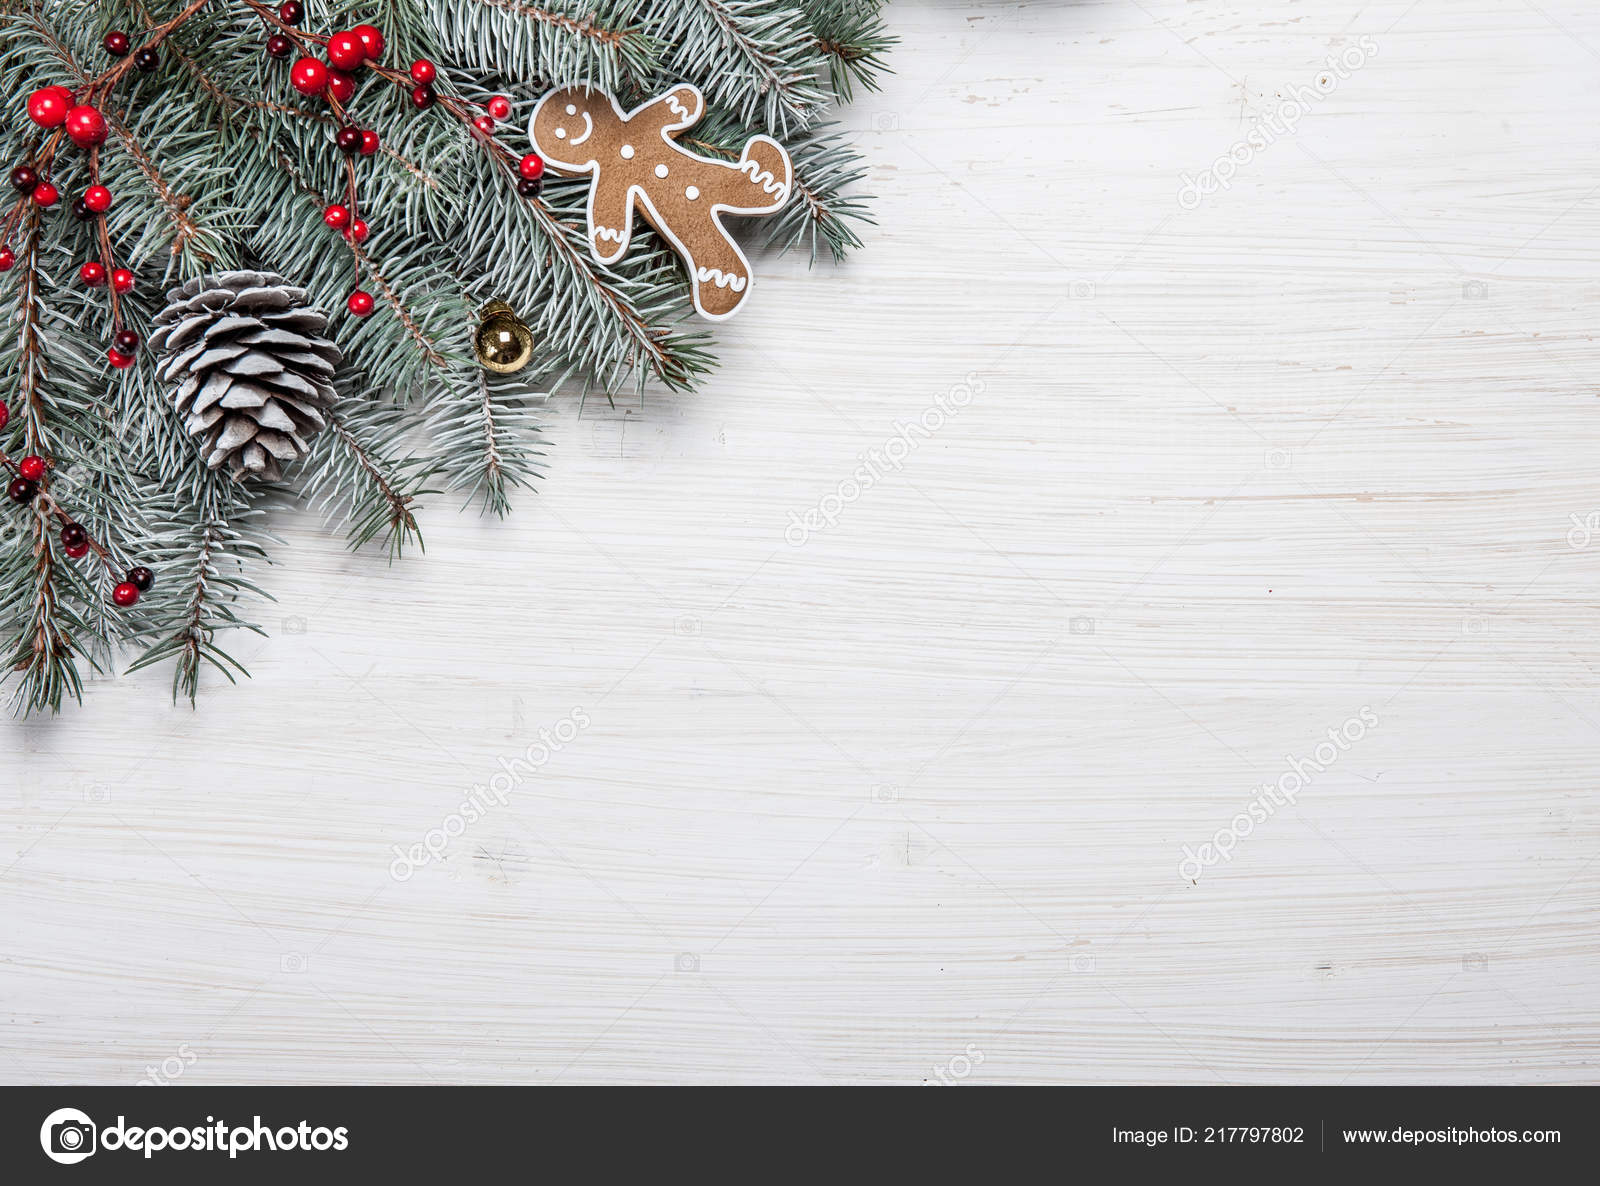 Christmas Wood Background.Christmas Card White Wooden Background With Snow Fir Tree